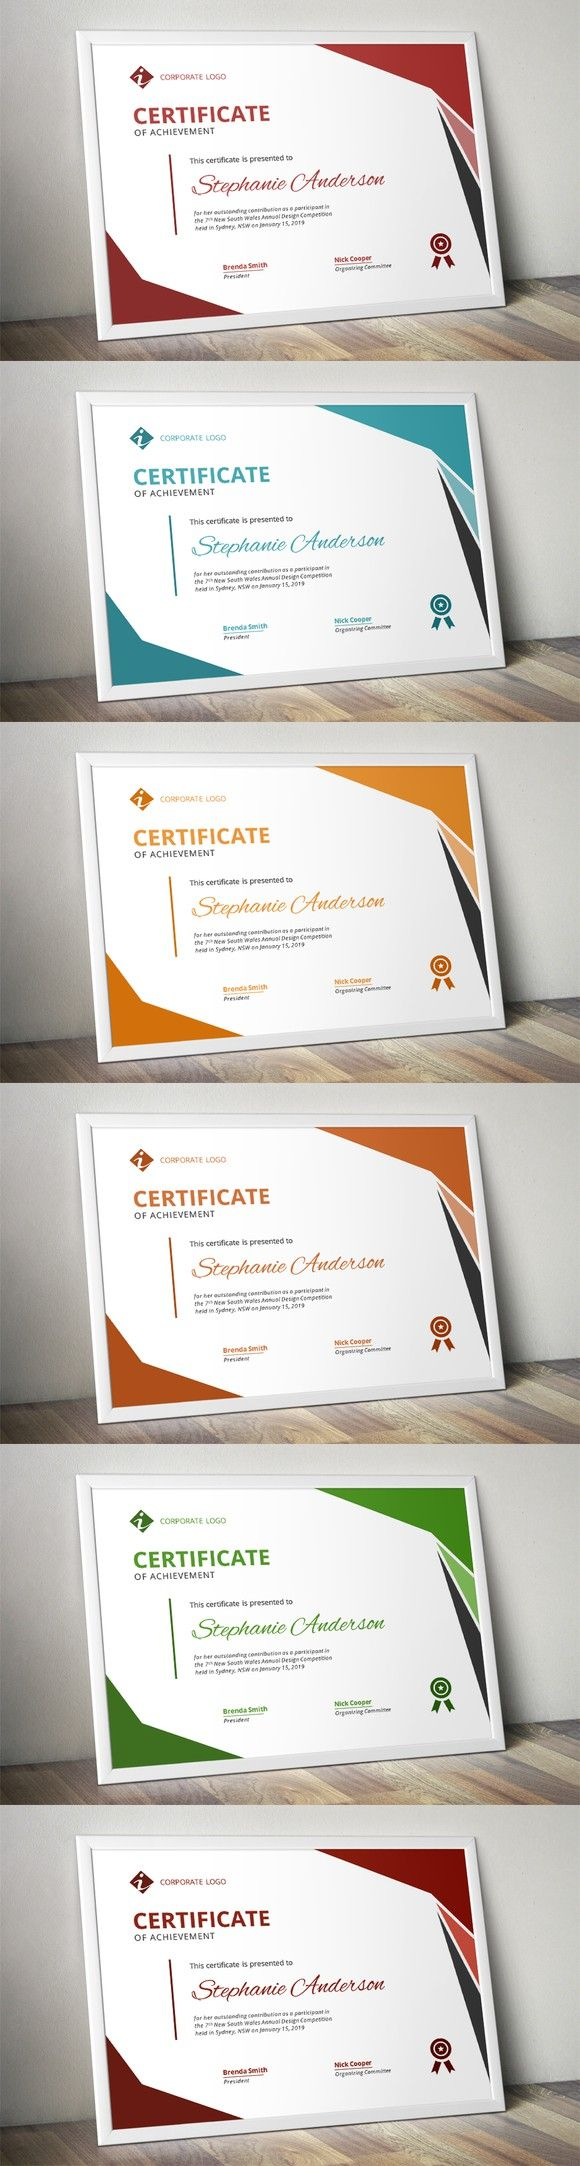 Background Templates For Microsoft Word Entrancing 7 Best Certificate Design Images On Pinterest